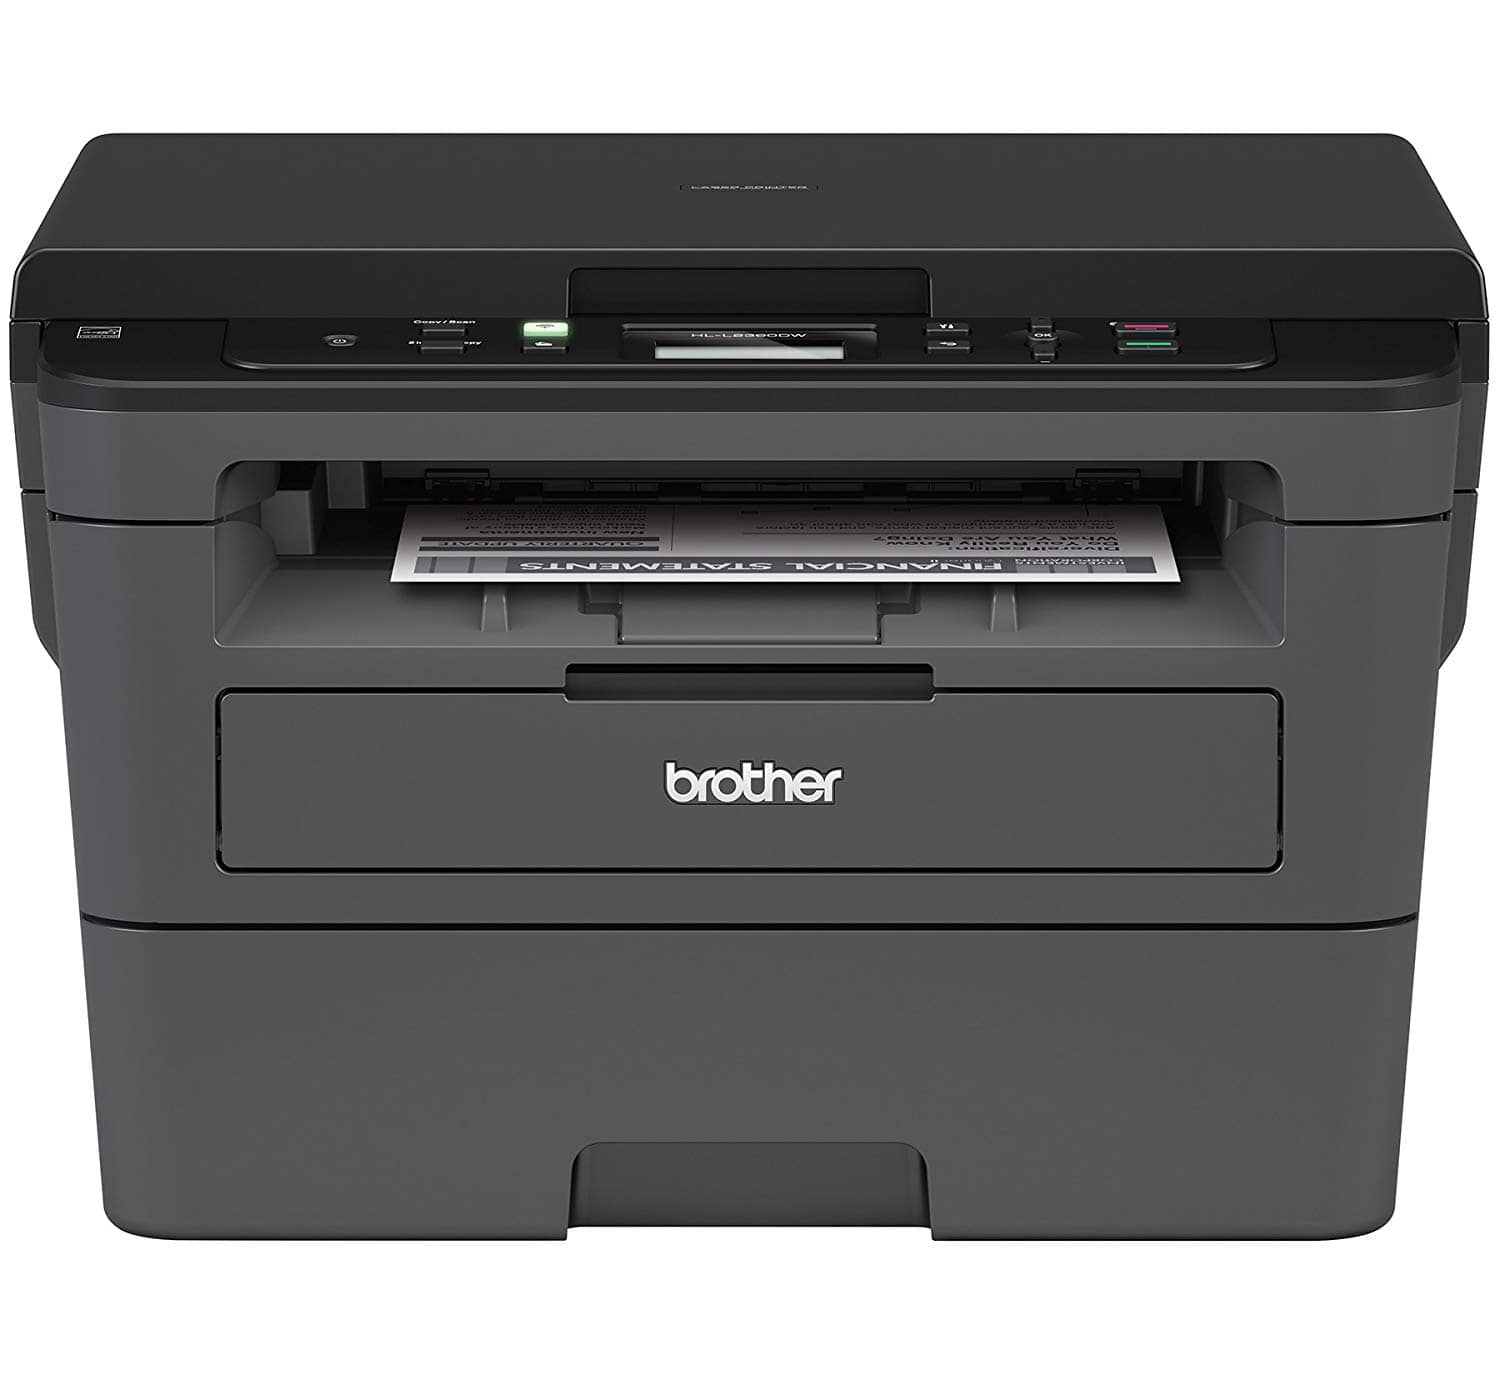 Brother HL-L2390DW Wireless Monochrome All-In-One Laser Printer $79.99 + Free Shipping